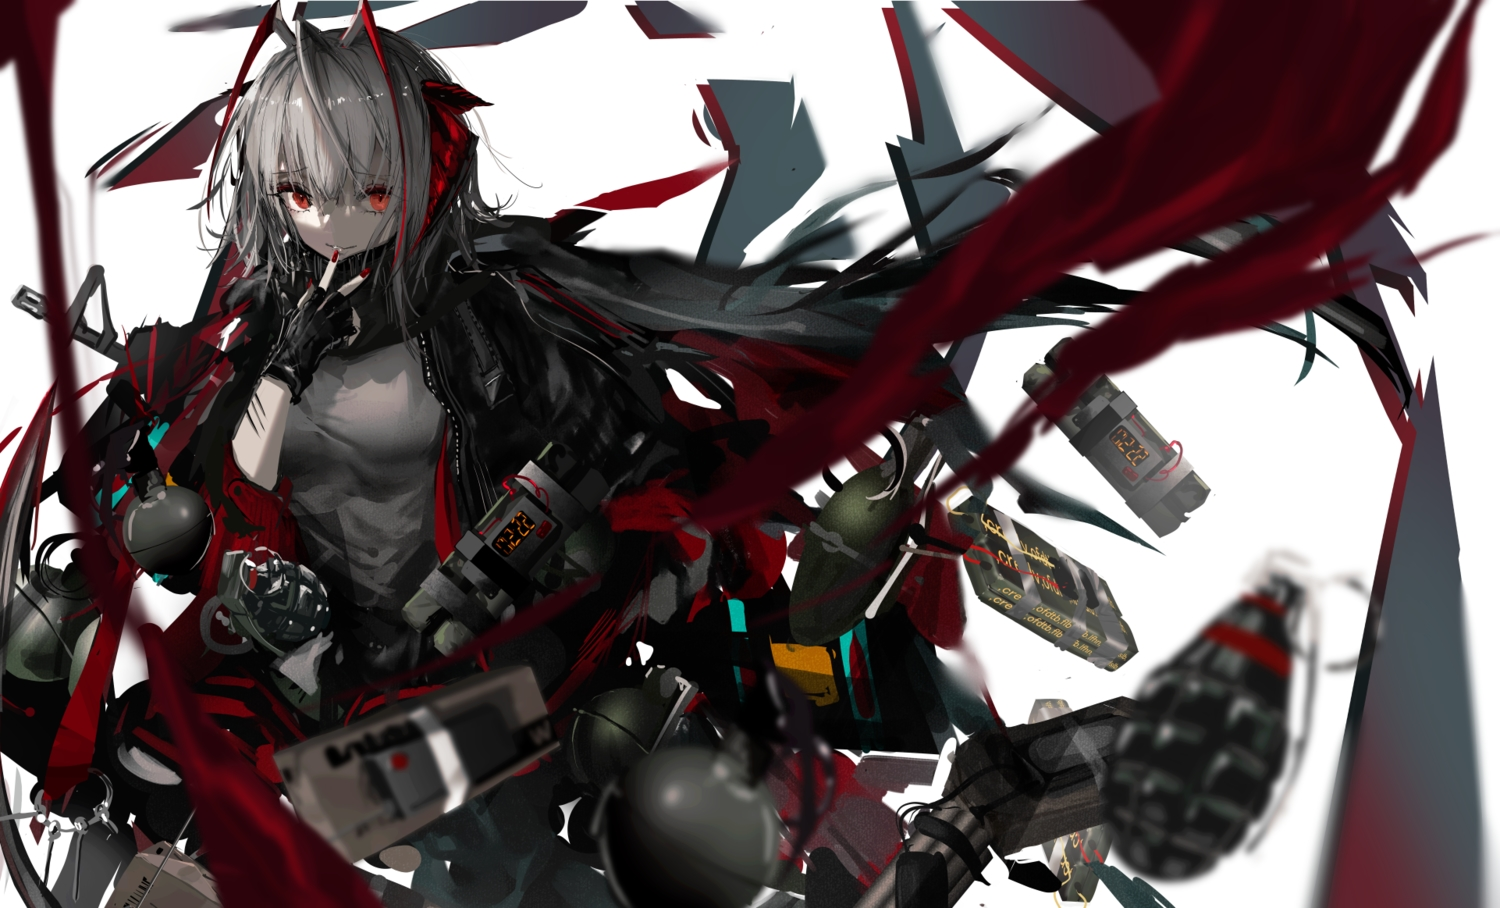 aliasing arknights gloves gray_hair horns naruwe polychromatic red_eyes scarf w_(arknights) weapon